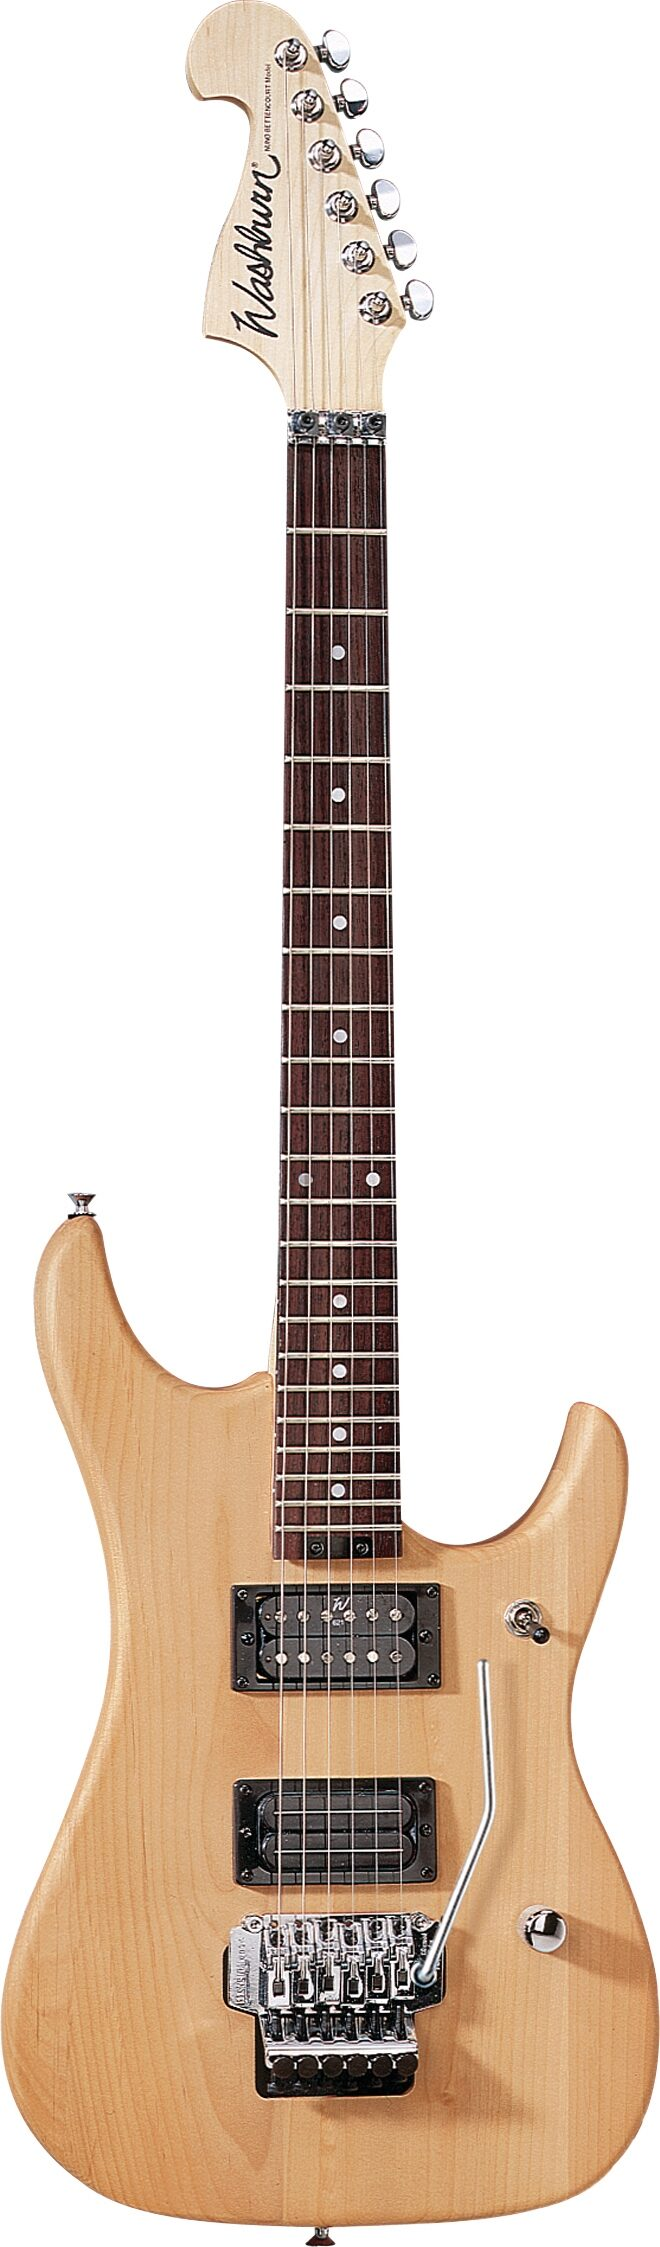 Washburn Nuno Bettancourt N2 Electric Guitar (with Gig Bag), Natural Matte